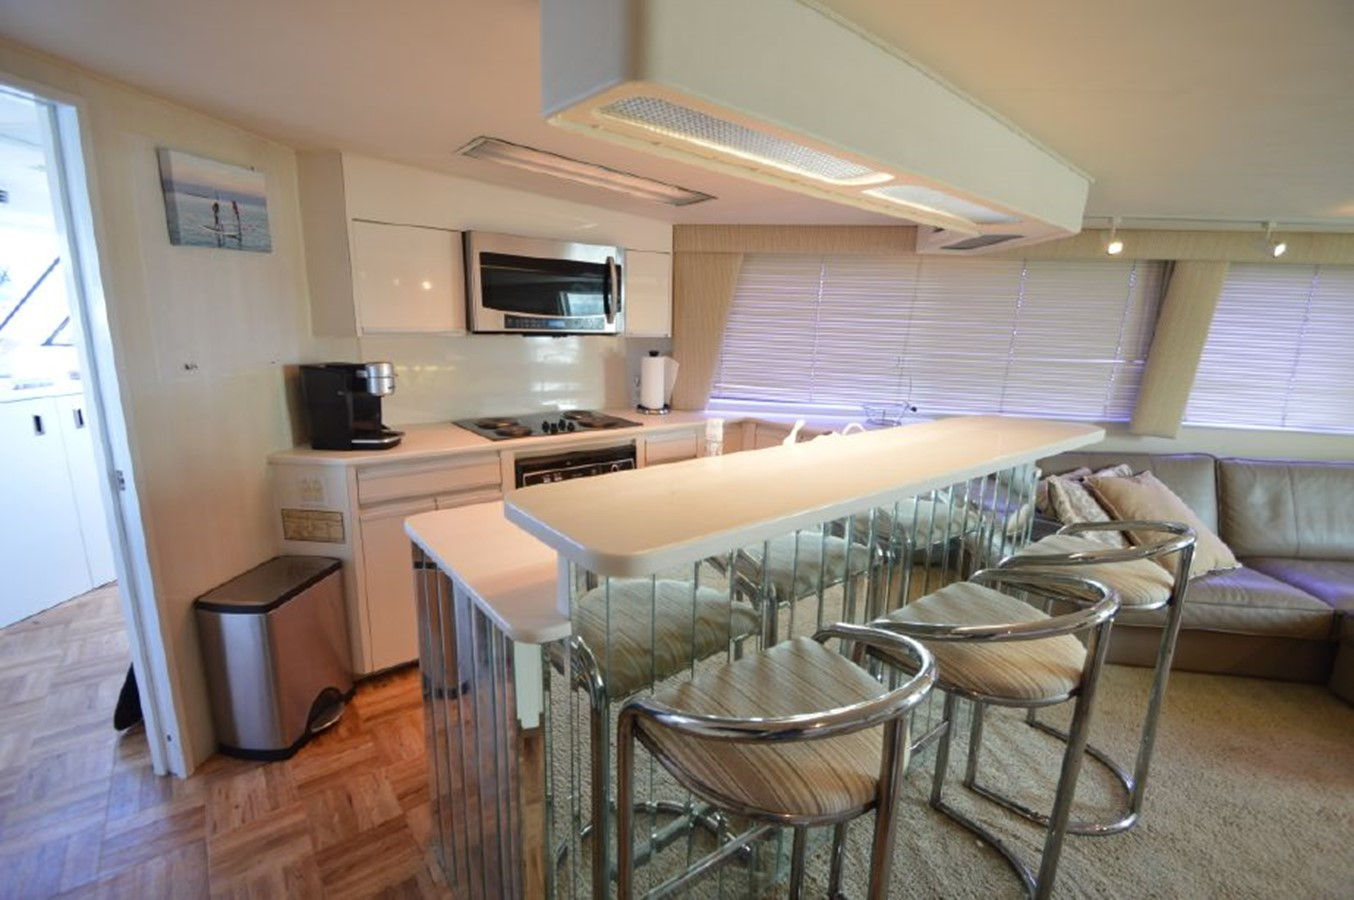 Galley Bar Stools - 54 HATTERAS For Sale